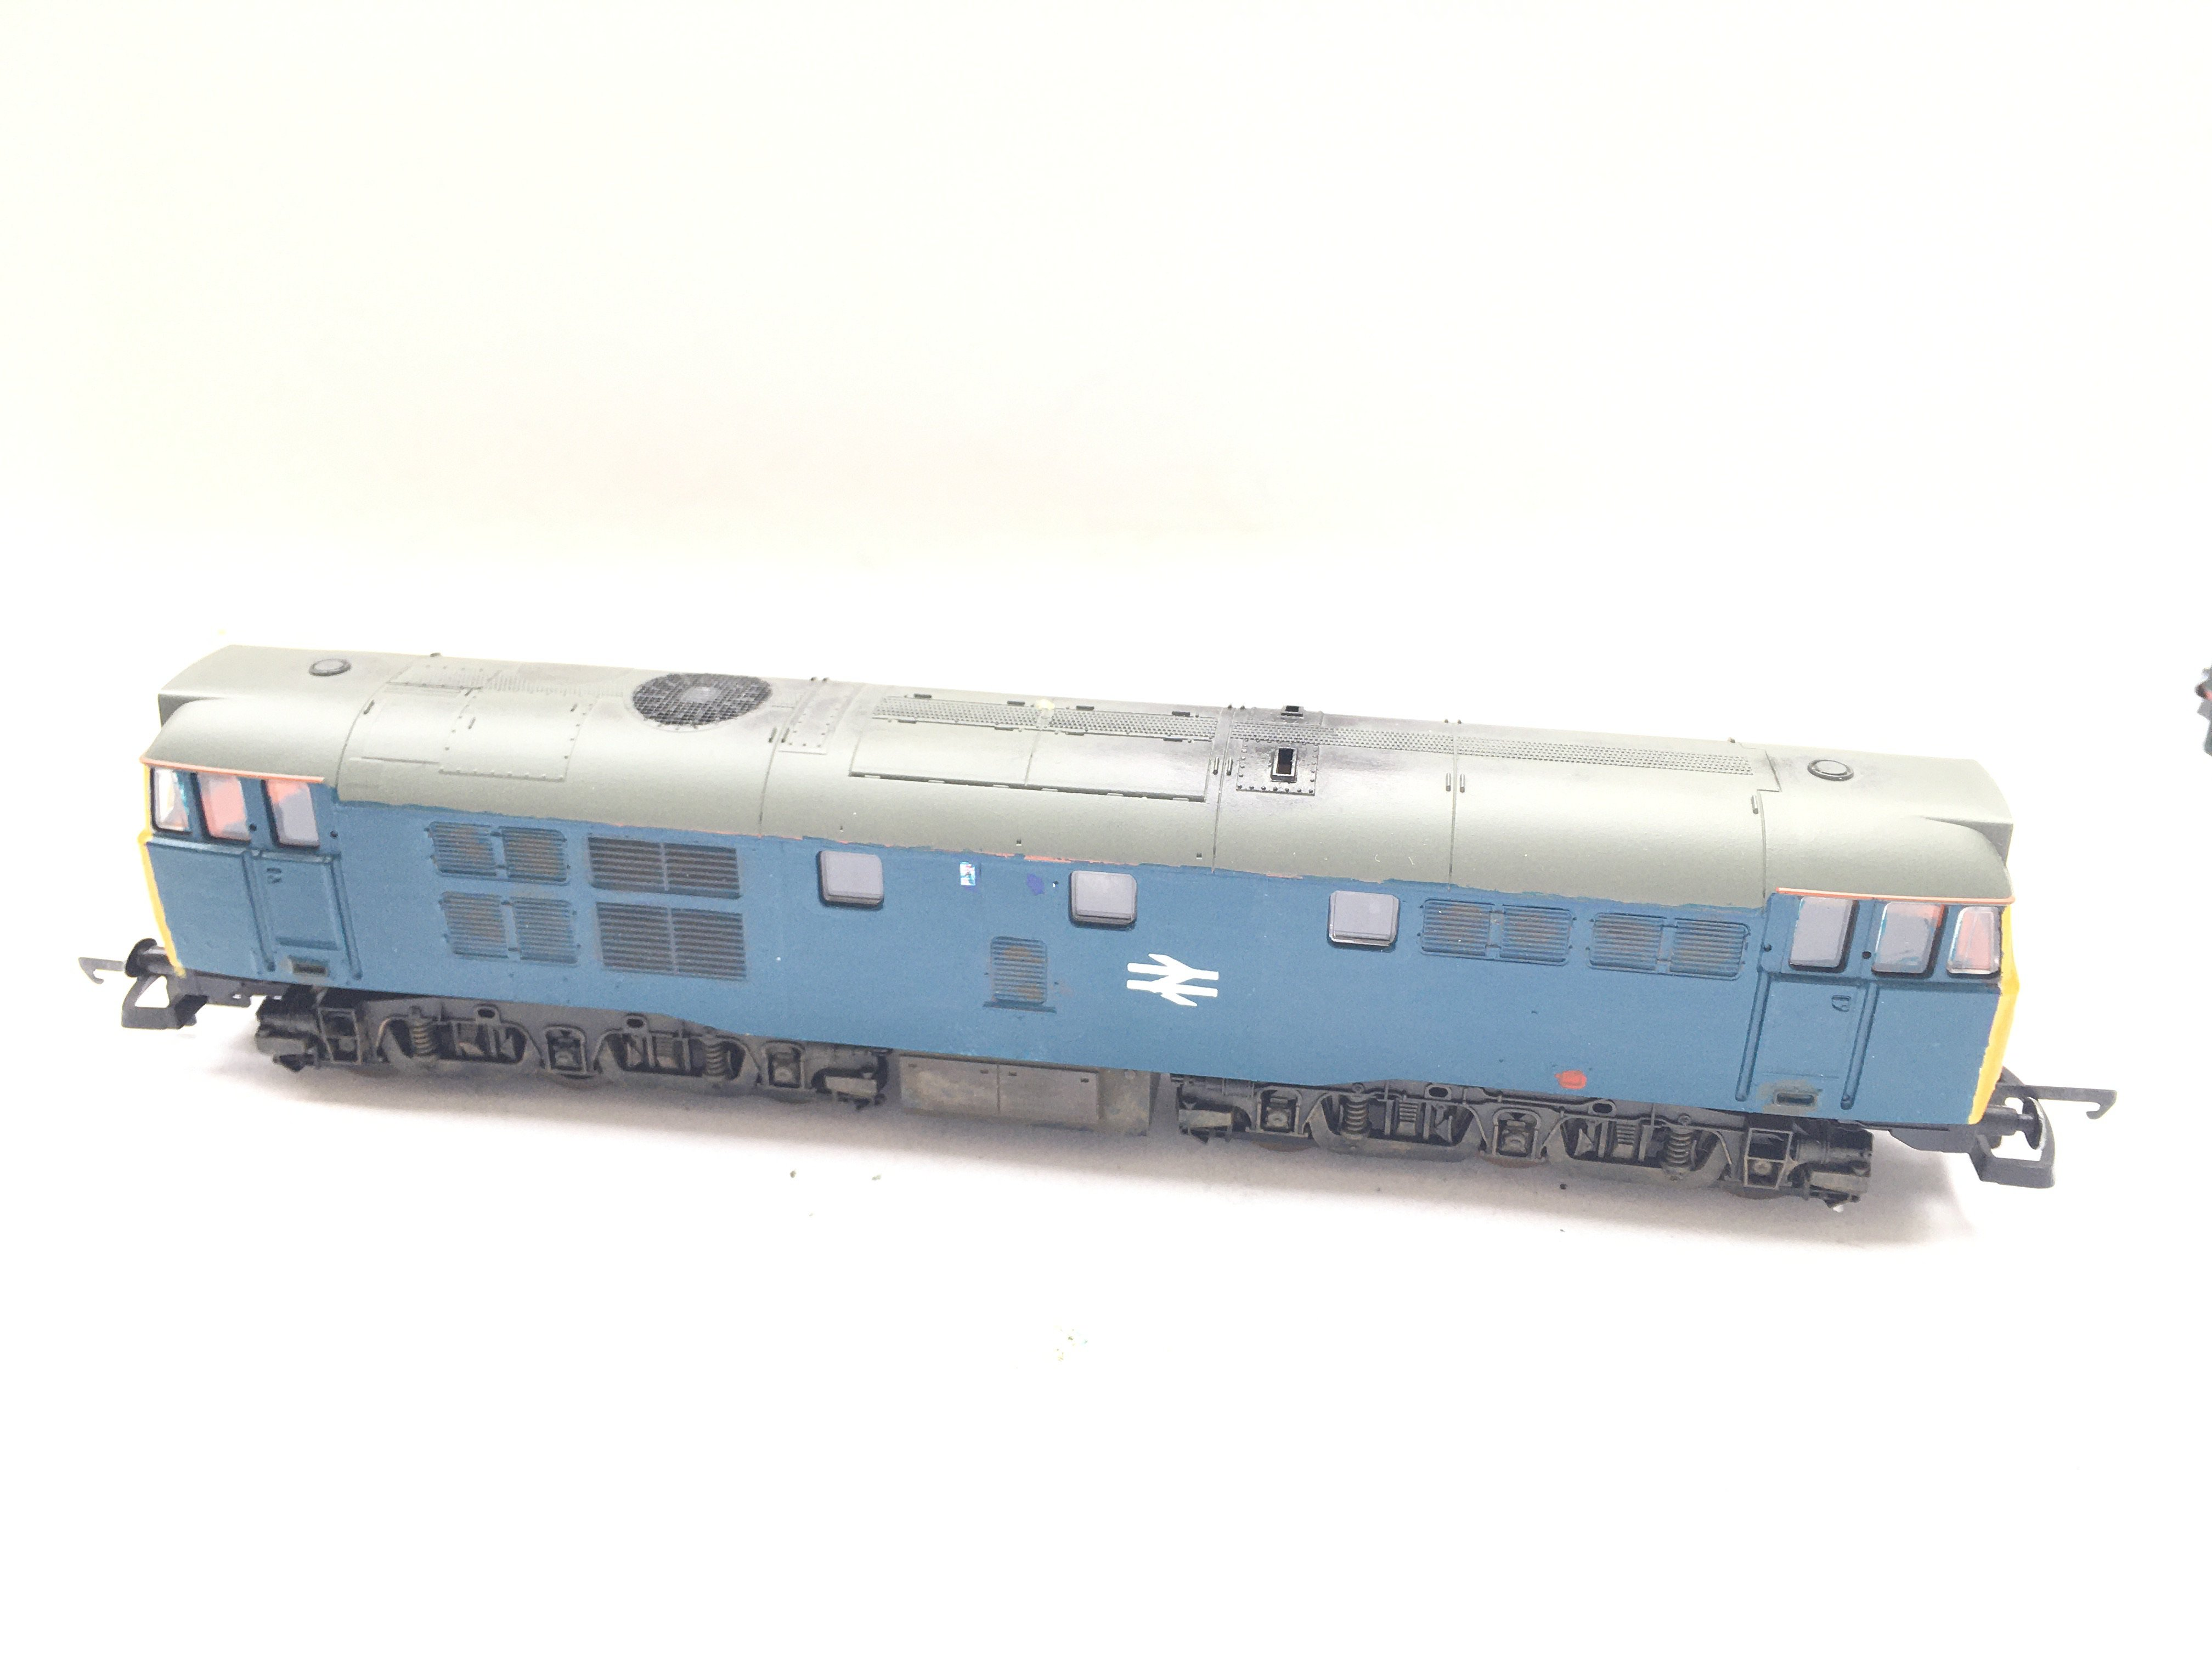 2 X Boxed Lima Locomotives including Western Sover - Image 2 of 3